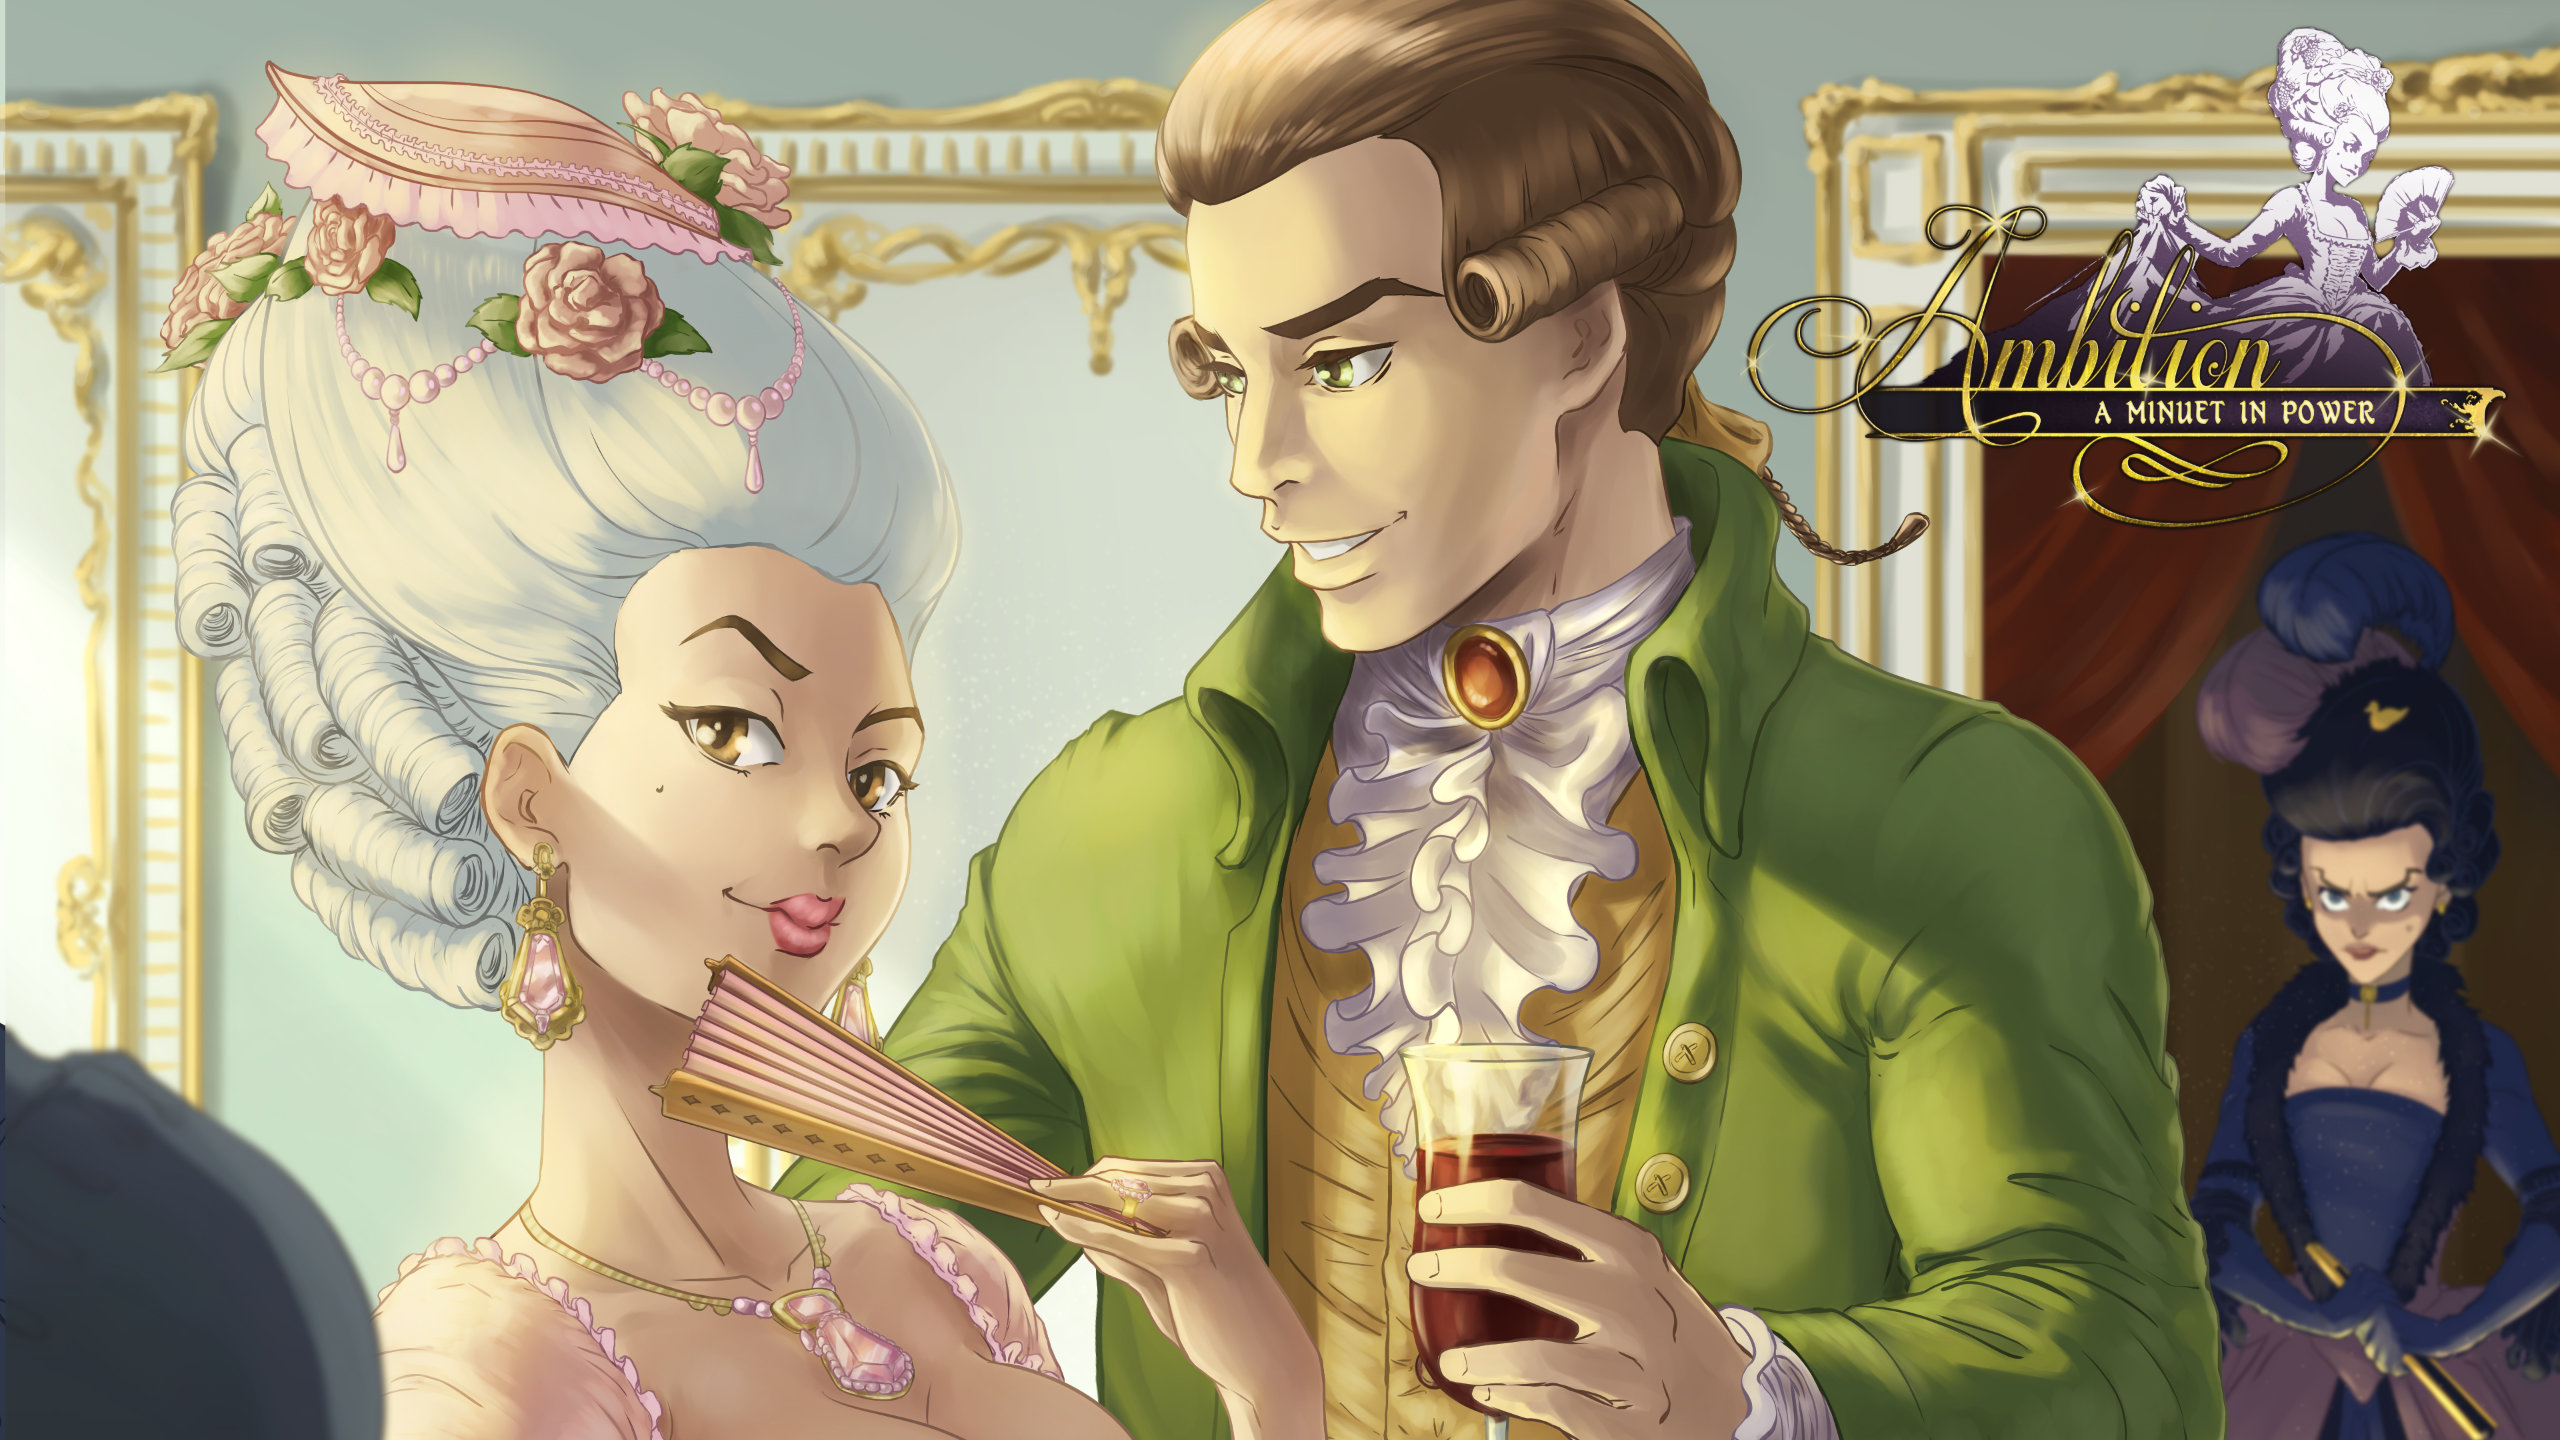 Romance is in the air in Ambition: A Minuet in Power